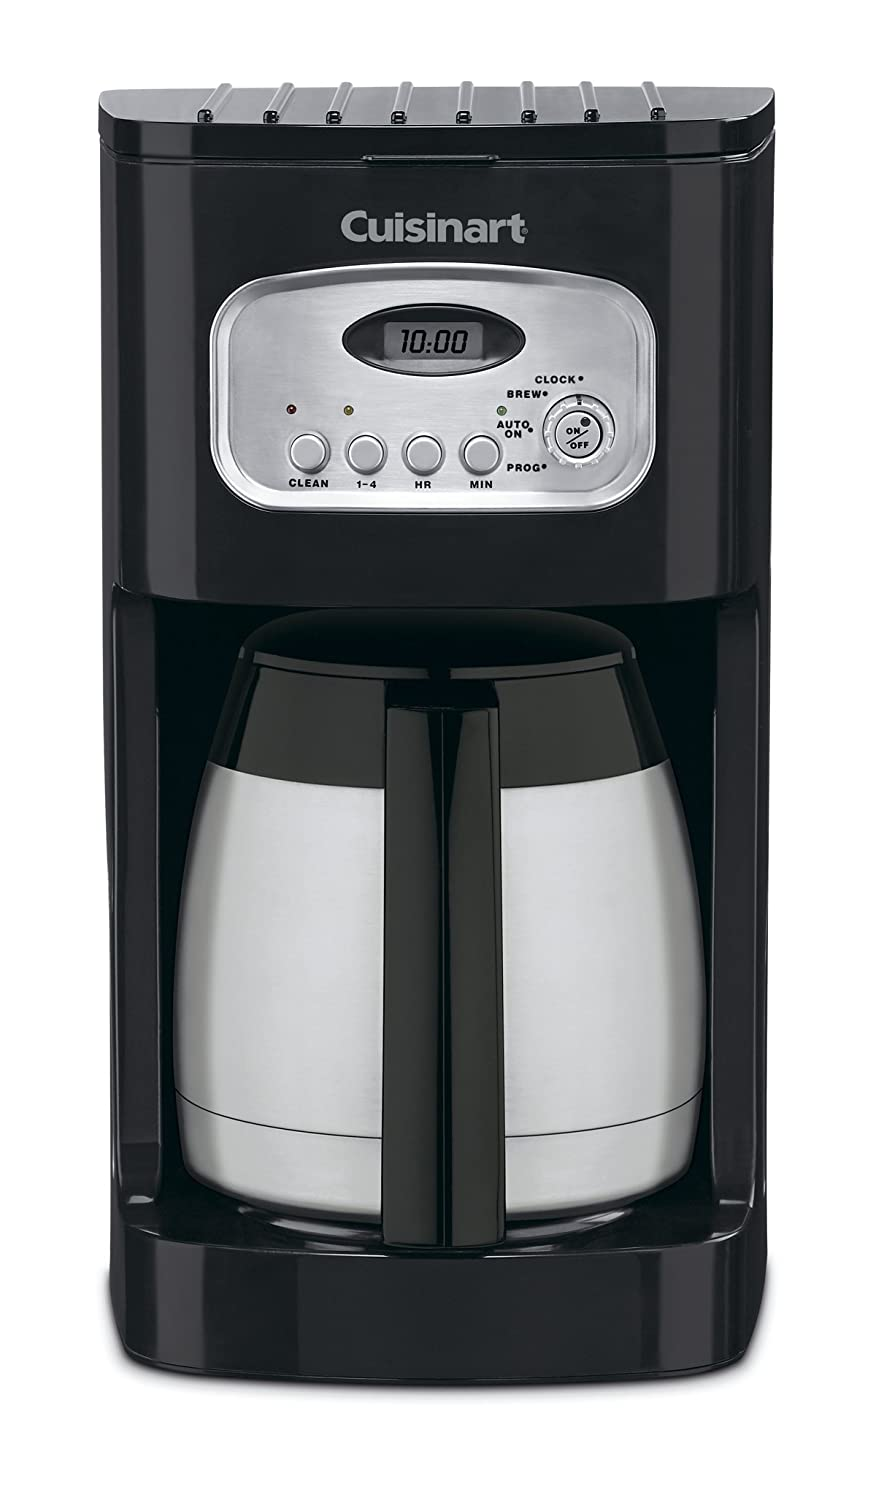 CuisinArt DCC-1150BK: The 10 Cup Coffee Maker With Smarts